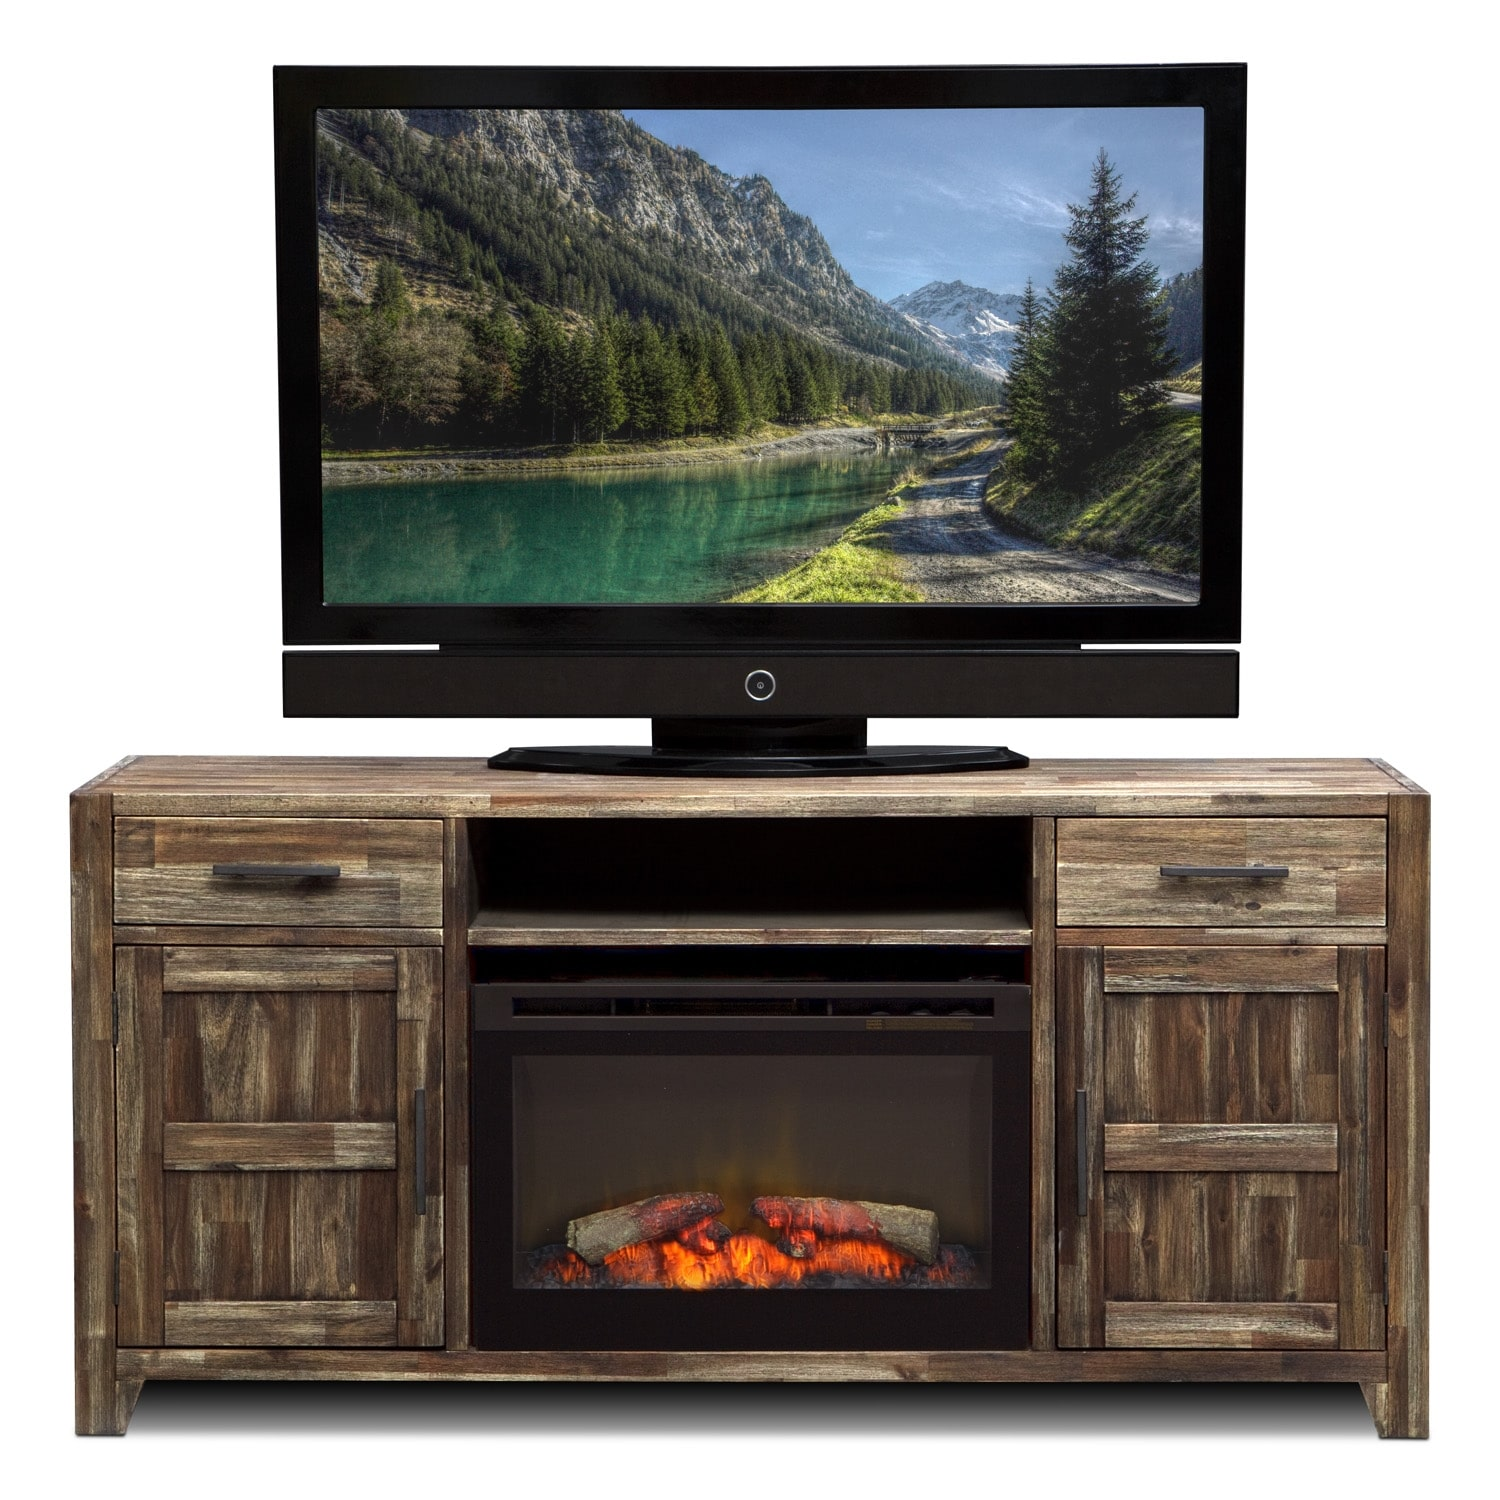 Brentwood Fireplace TV Stand in Traditional Insert - Medium Brown ...